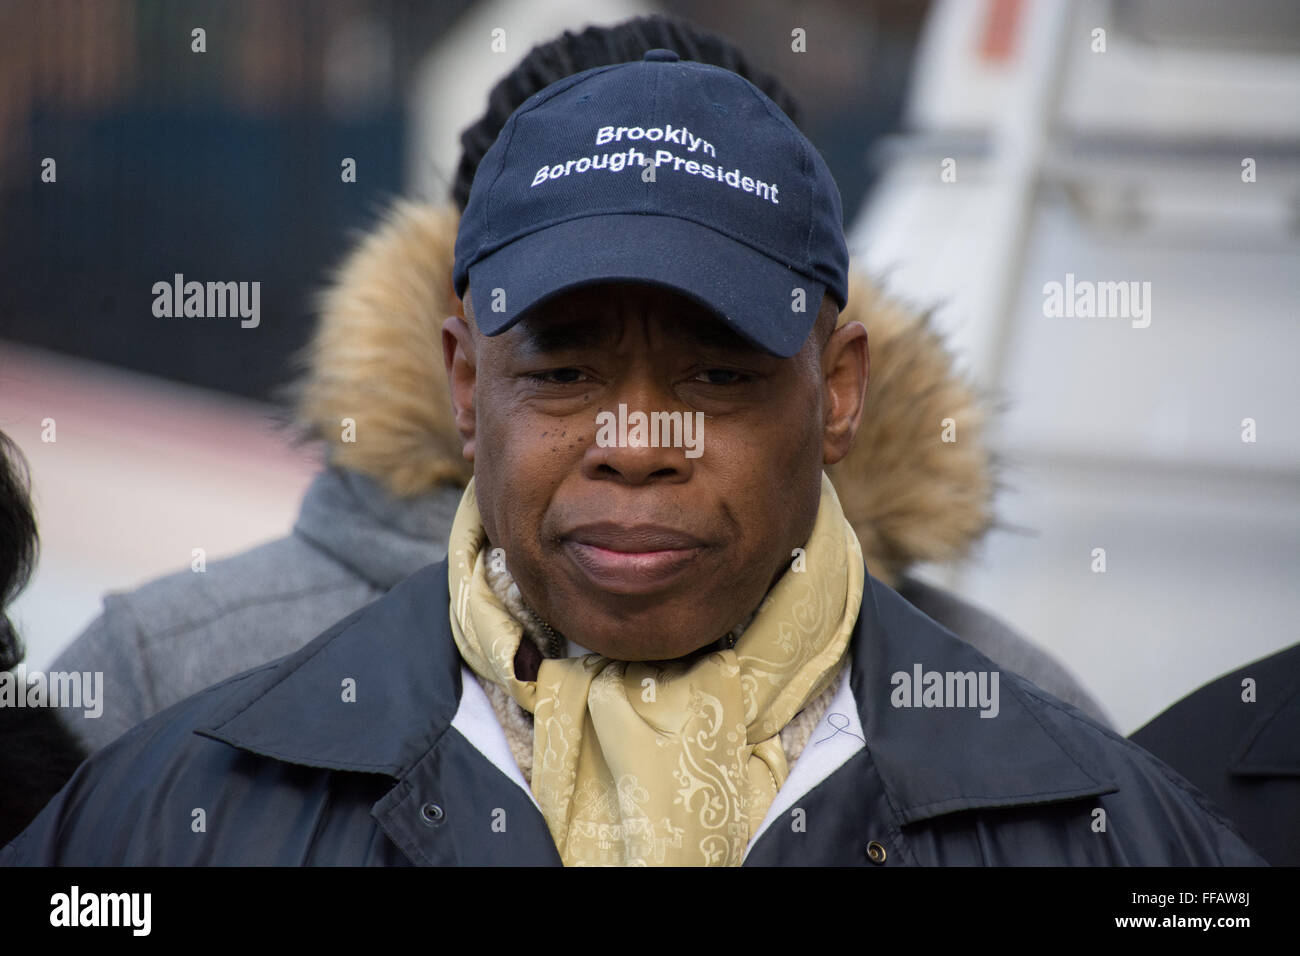 Brooklyn, USA. 11 February, 2016. Brooklyn Borough President Eric Adams shows his dismay  at the site of a knife - Stock Image